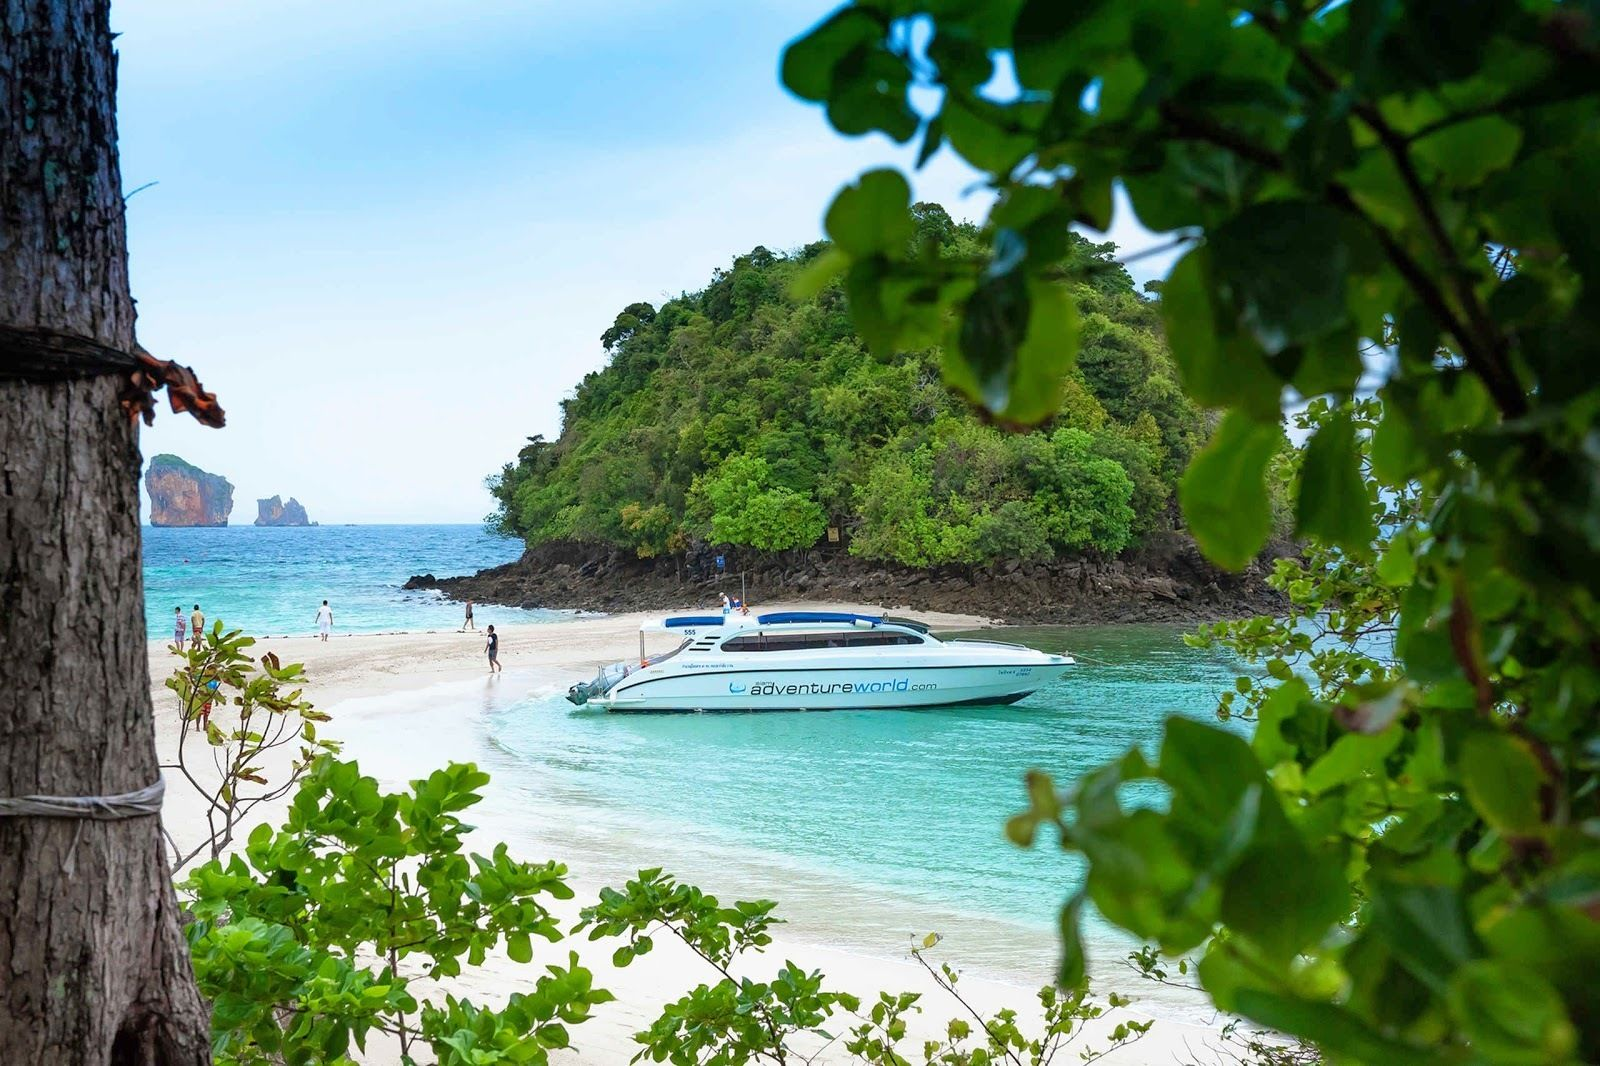 Early Bird Tour to 4 Islands & Railay by Siam Adventure World from Phuket